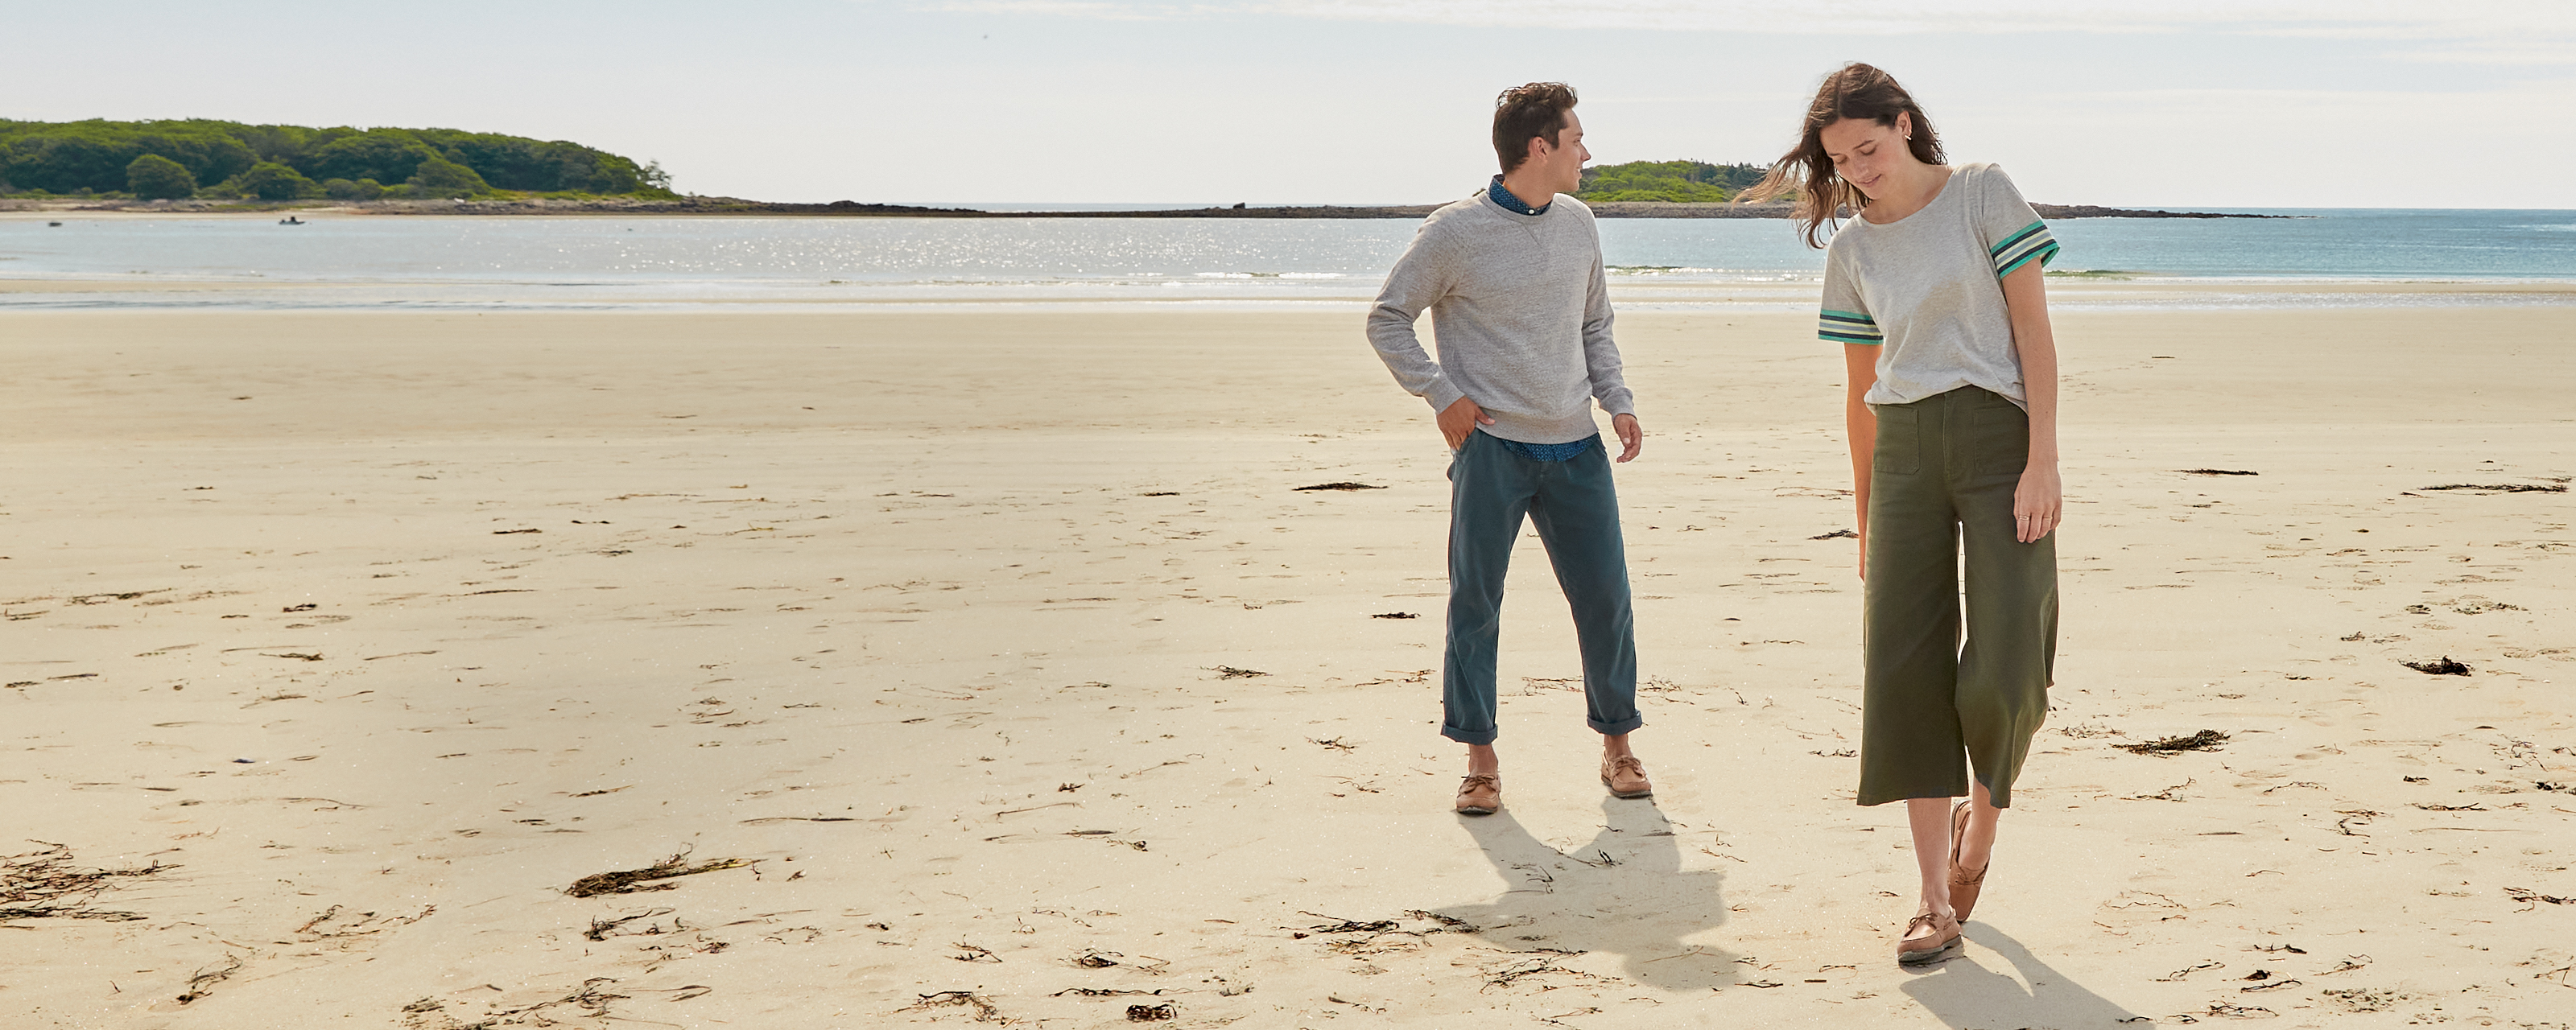 Man and woman walking in classic Sperry shoes on the beach.